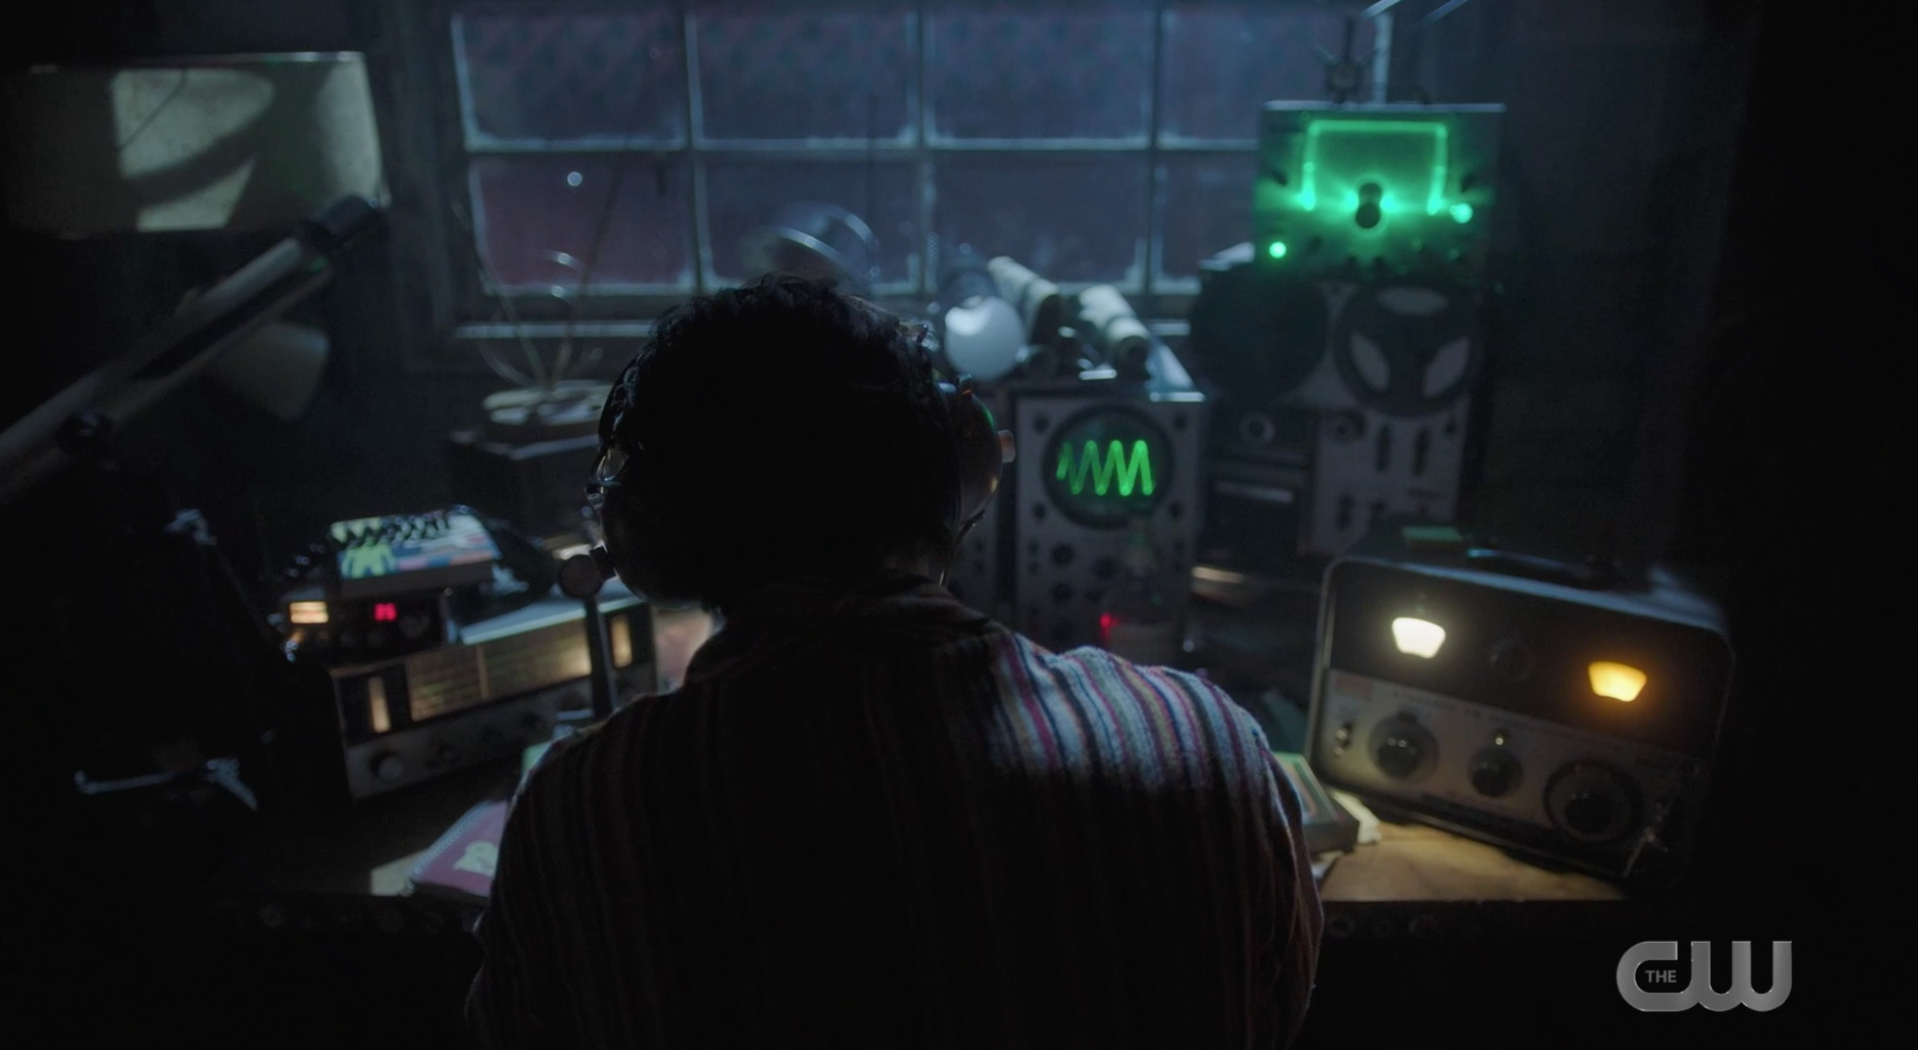 Jughead sitting in his room with tech equipment